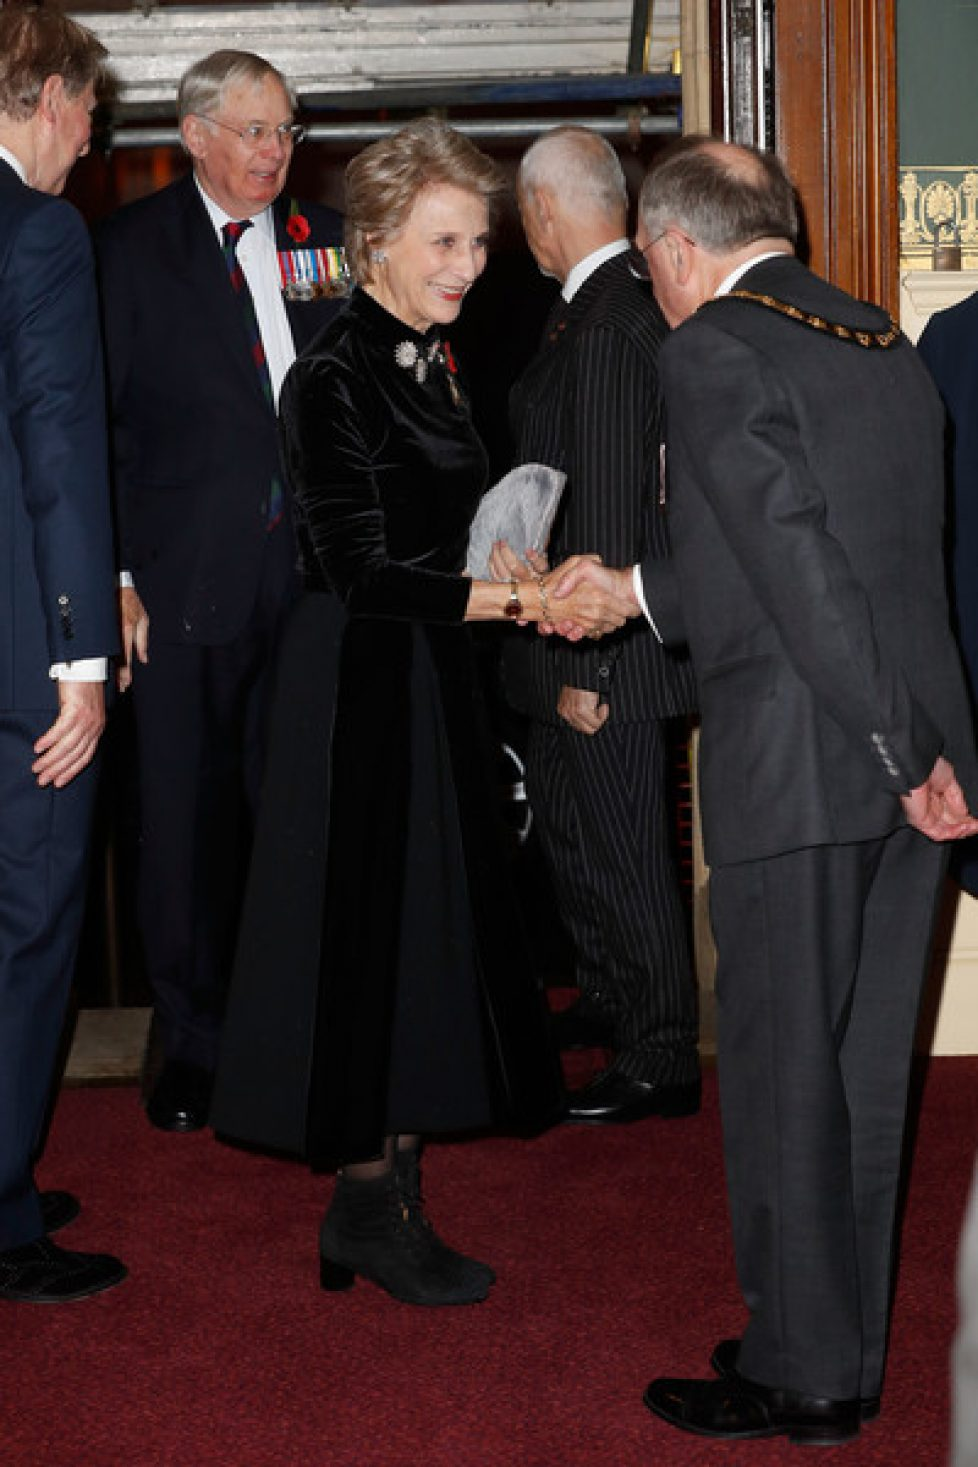 Royal+Family+Attend+Festival+Remembrance+SUQQ_fiecpHl